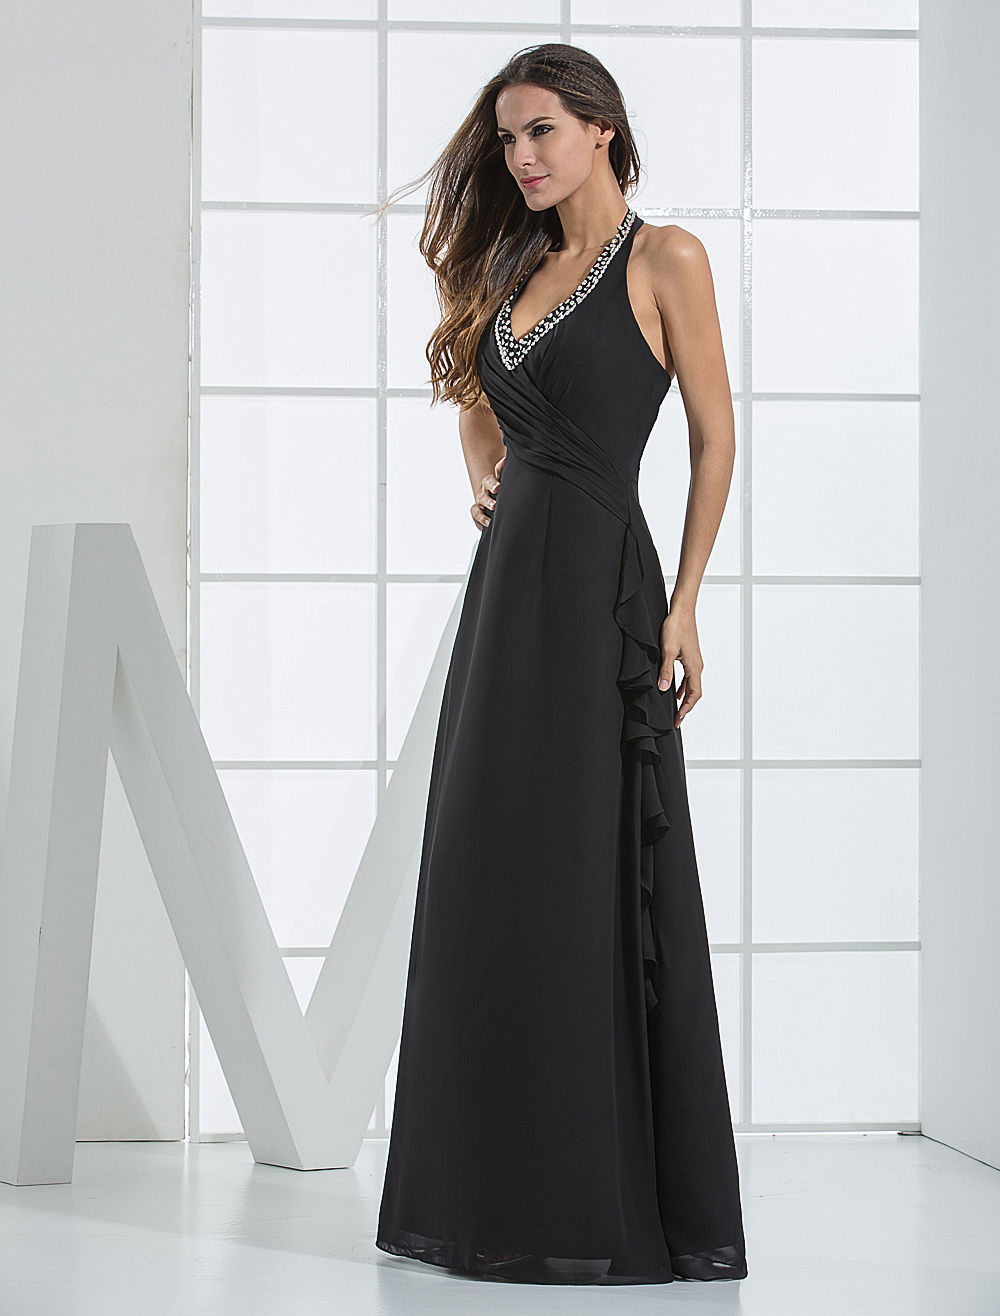 Black Chiffon Halter Bridesmaid Dress with Beaded